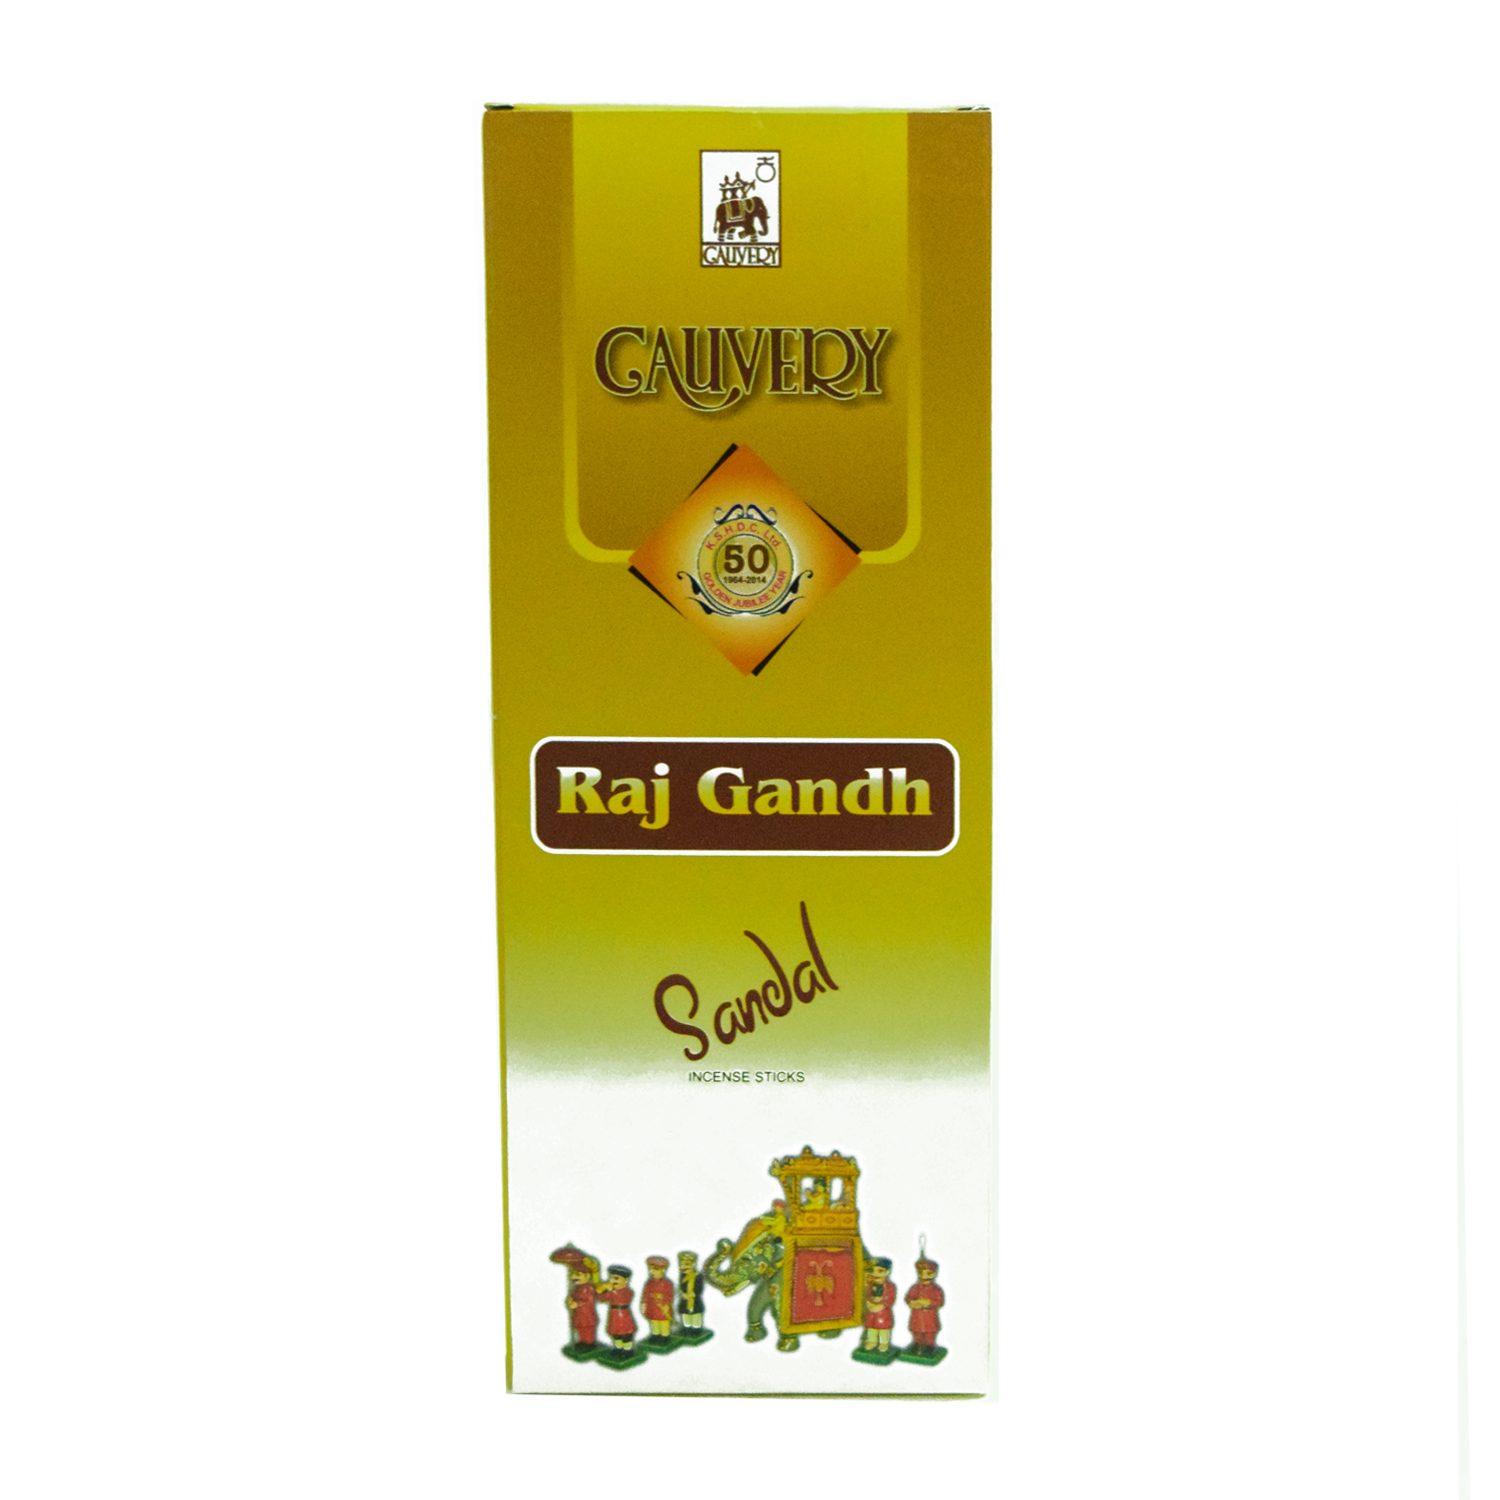 Cauvery Raj Gandh Sandal Incense Sticks